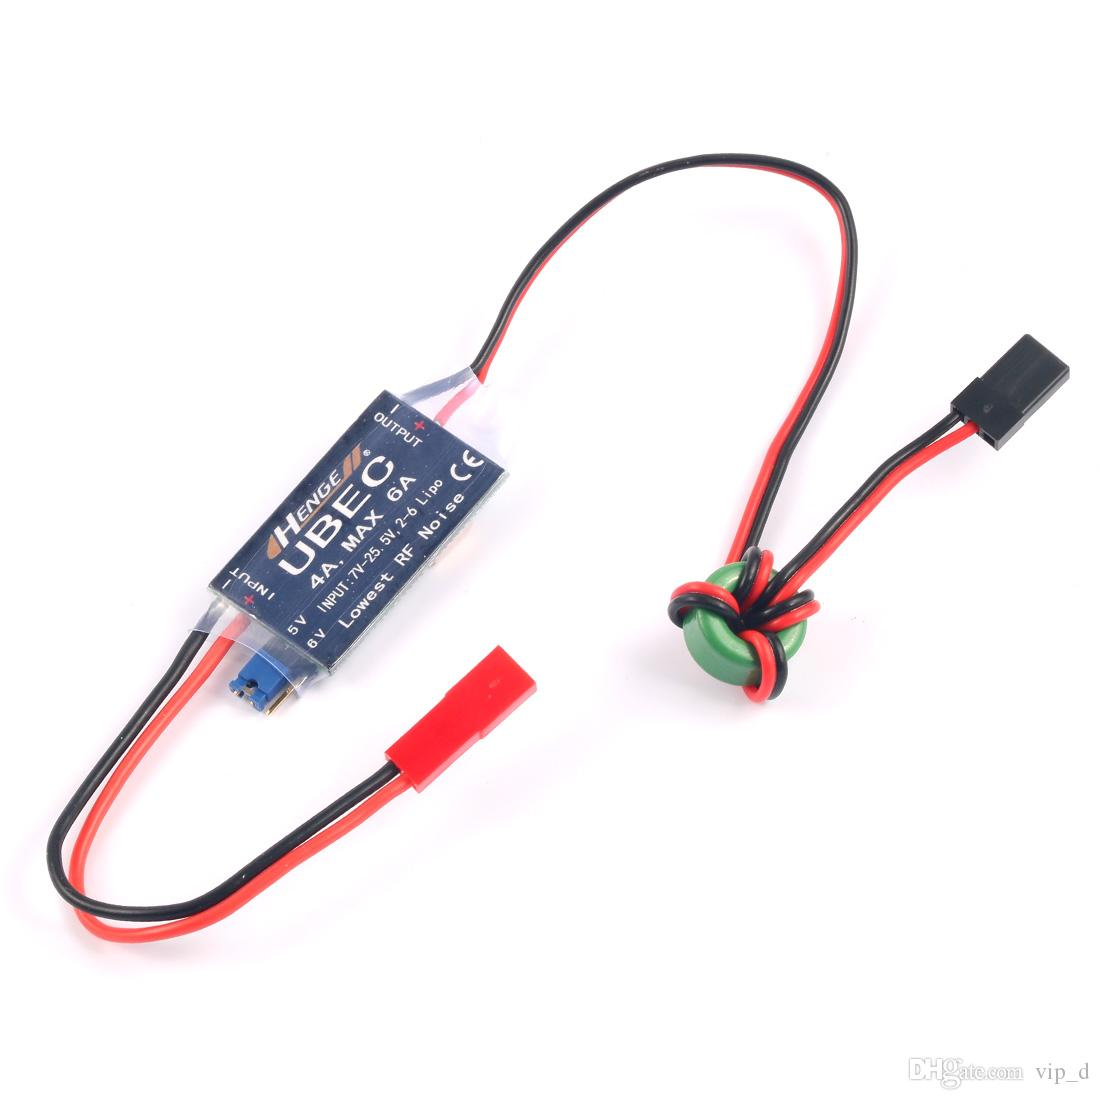 hight resolution of 2019 henge 4a ubec input 7v 25 5v 2 6s lipo output 5v 6v 4a continuous max 6a switch mode bec for rc helicopters airplane car parts from vip d